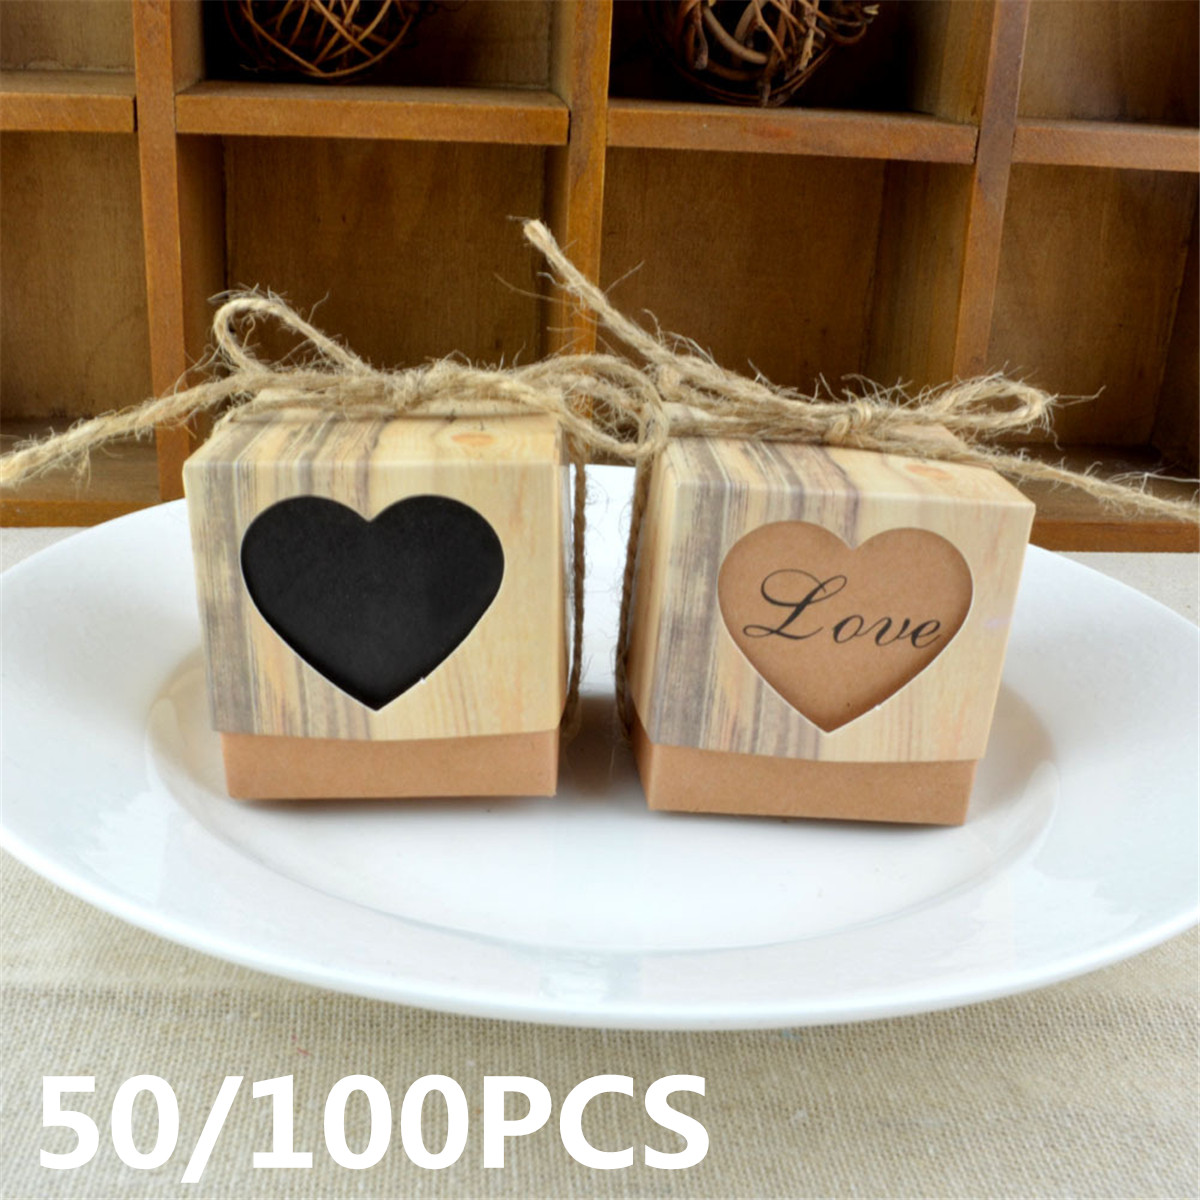 50/100PCS Kraft Paper Candy Box Rustic Wedding Party Chocolate Candy Gift Bags Christmas New Year Gift Boxes Cookies Holder